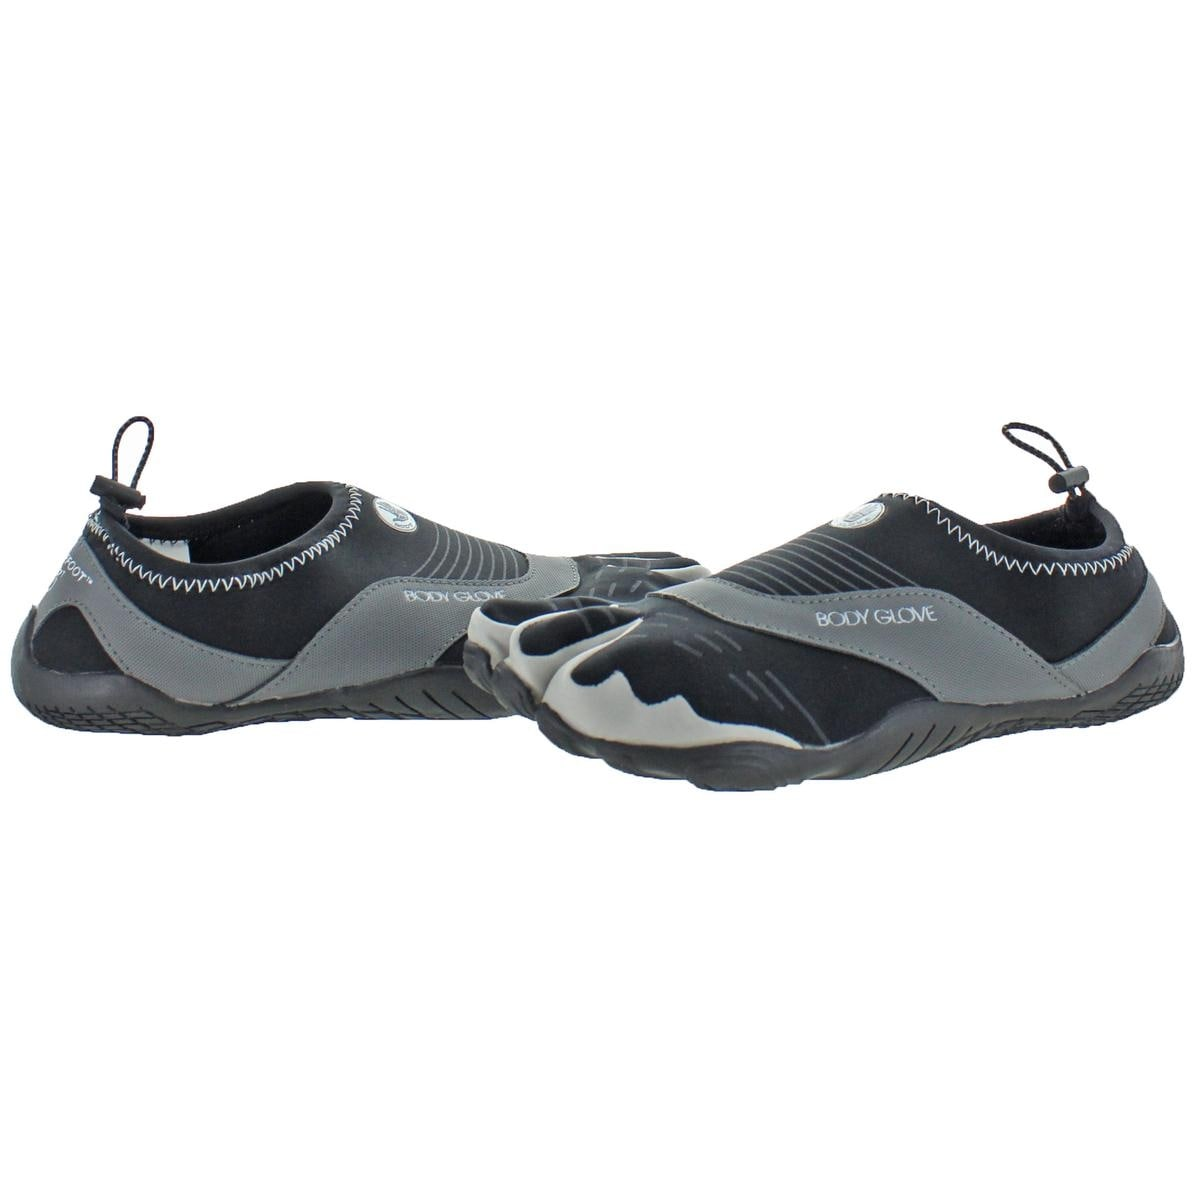 7952cc035769d Shop Body Glove Mens Barefoot Cinch Water Shoes IDS Technology Three-Toe -  Ships To Canada - Overstock - 24077328